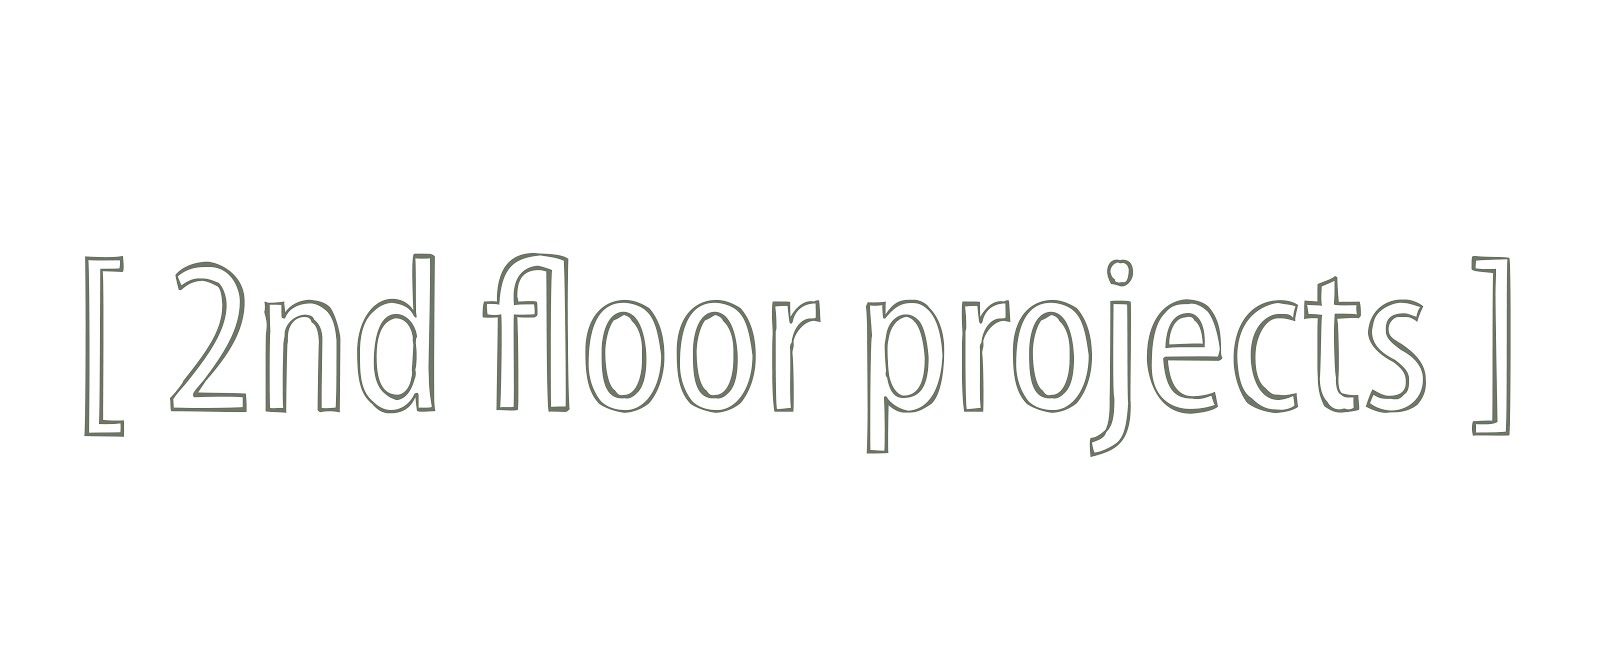 [ 2nd floor projects ]